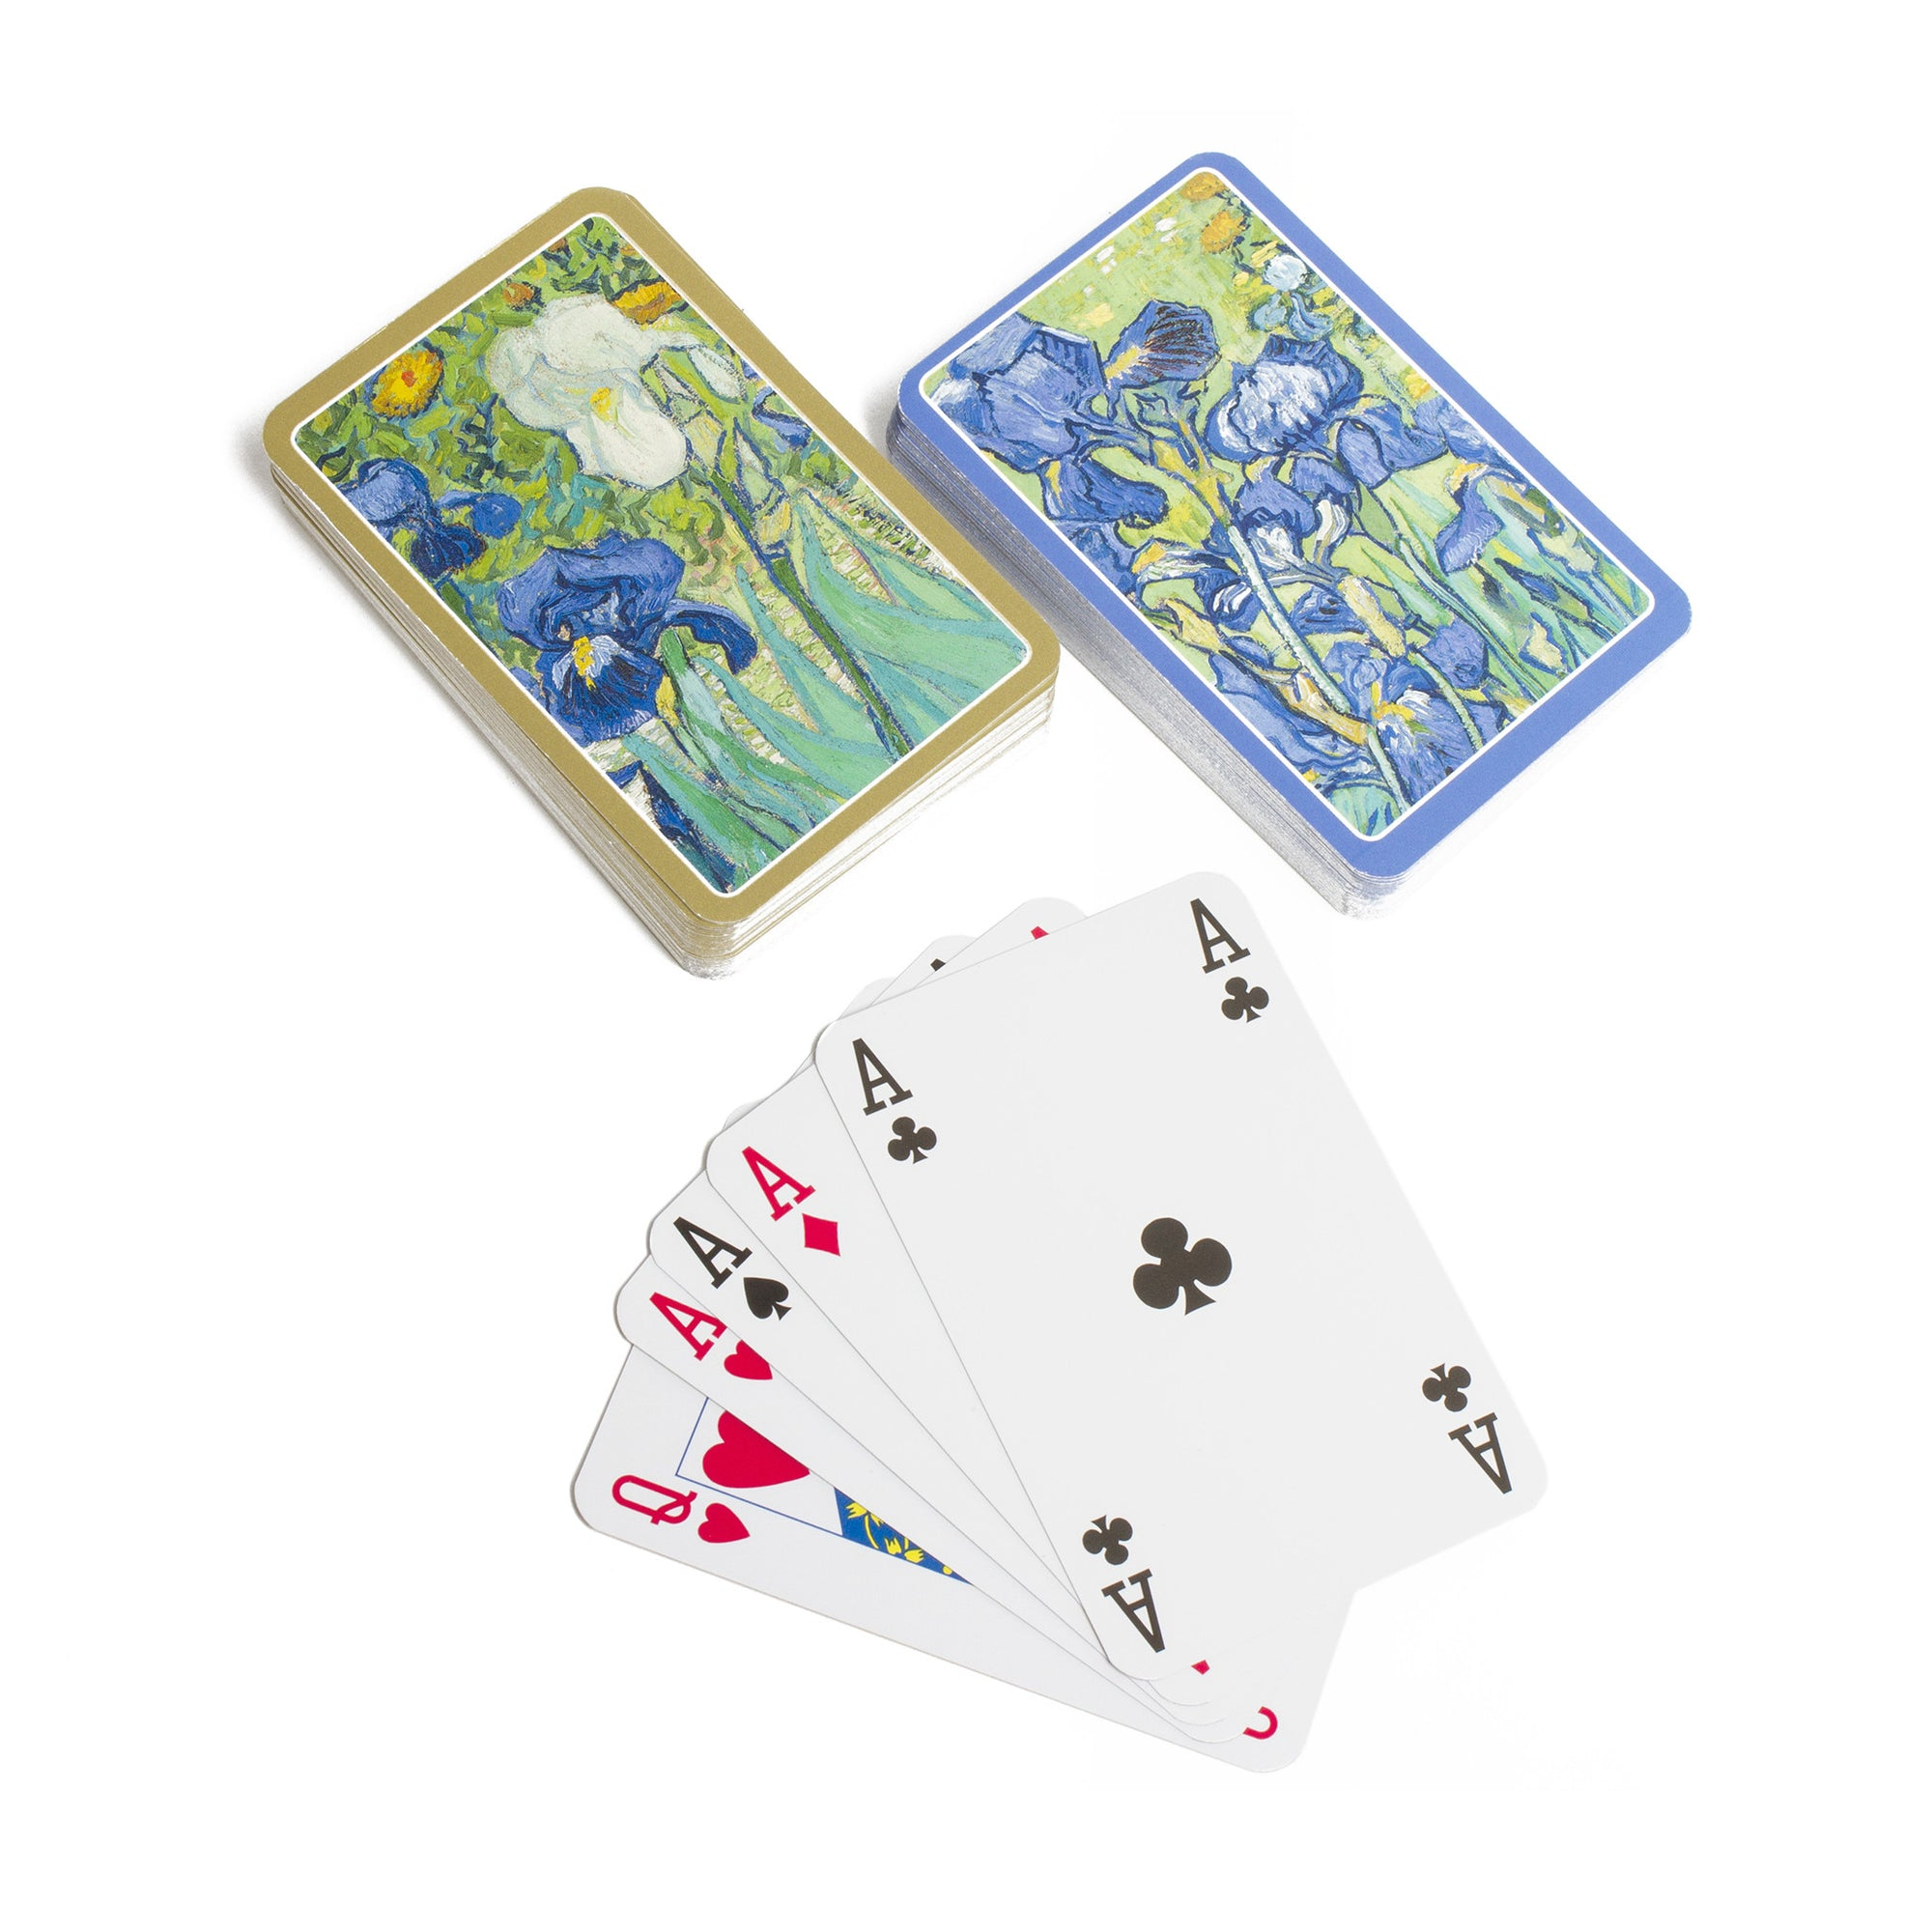 Van Gogh Irises Playing Cards- 2 decks per box | Getty Store